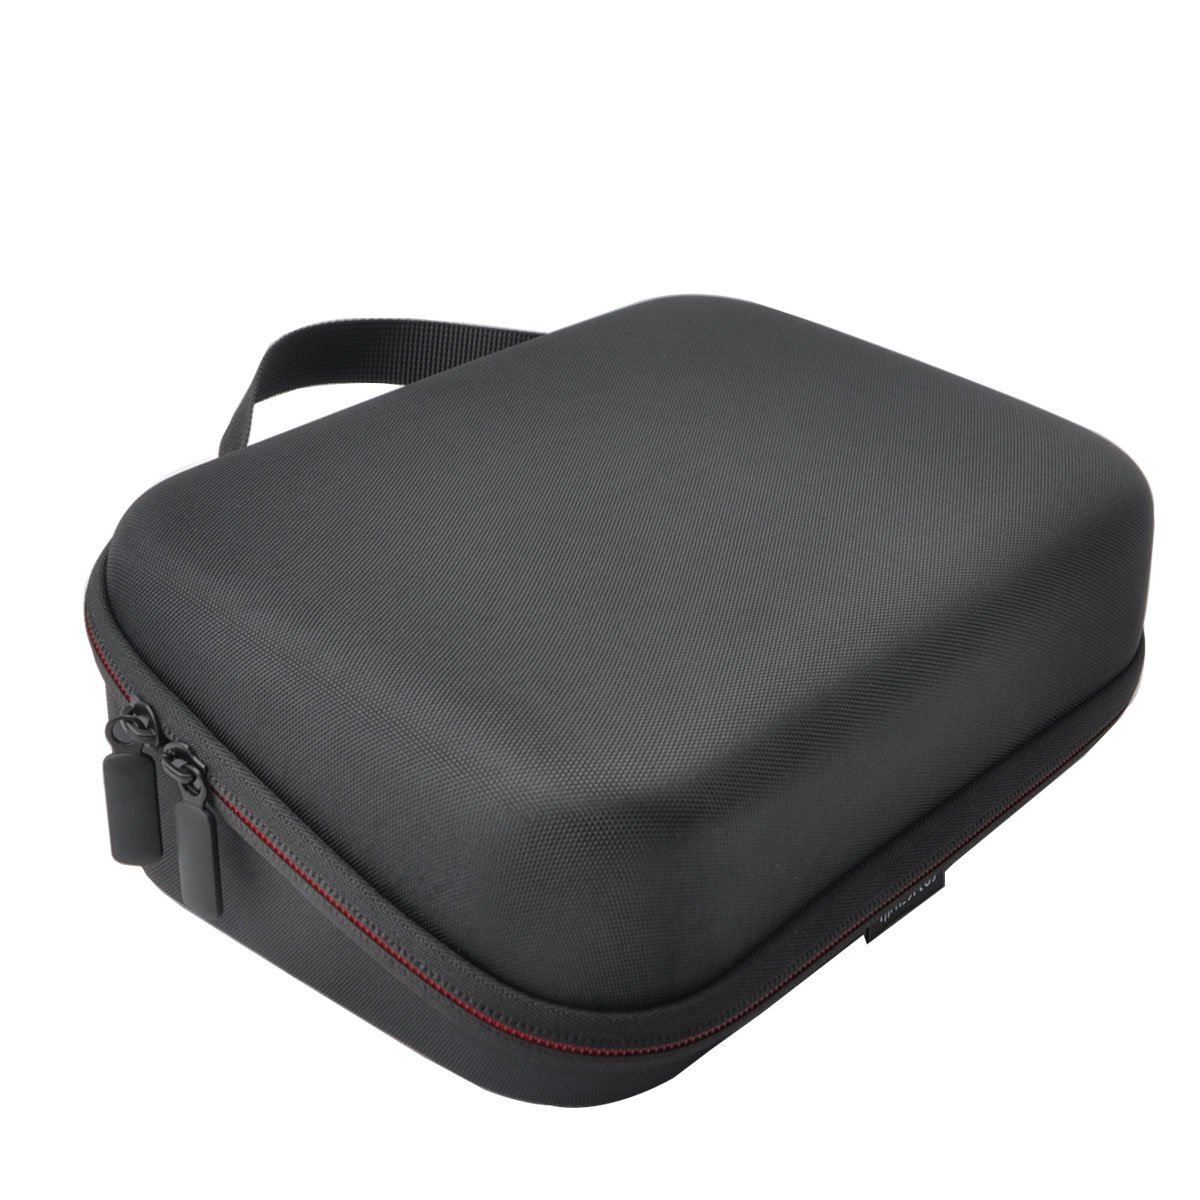 HESPLUS Carrying Case Travel Bag for Omron 10 Series Wireless Upper Arm Blood Pressure Monitor (BP786 / BP786N / BP785N / BP791IT)